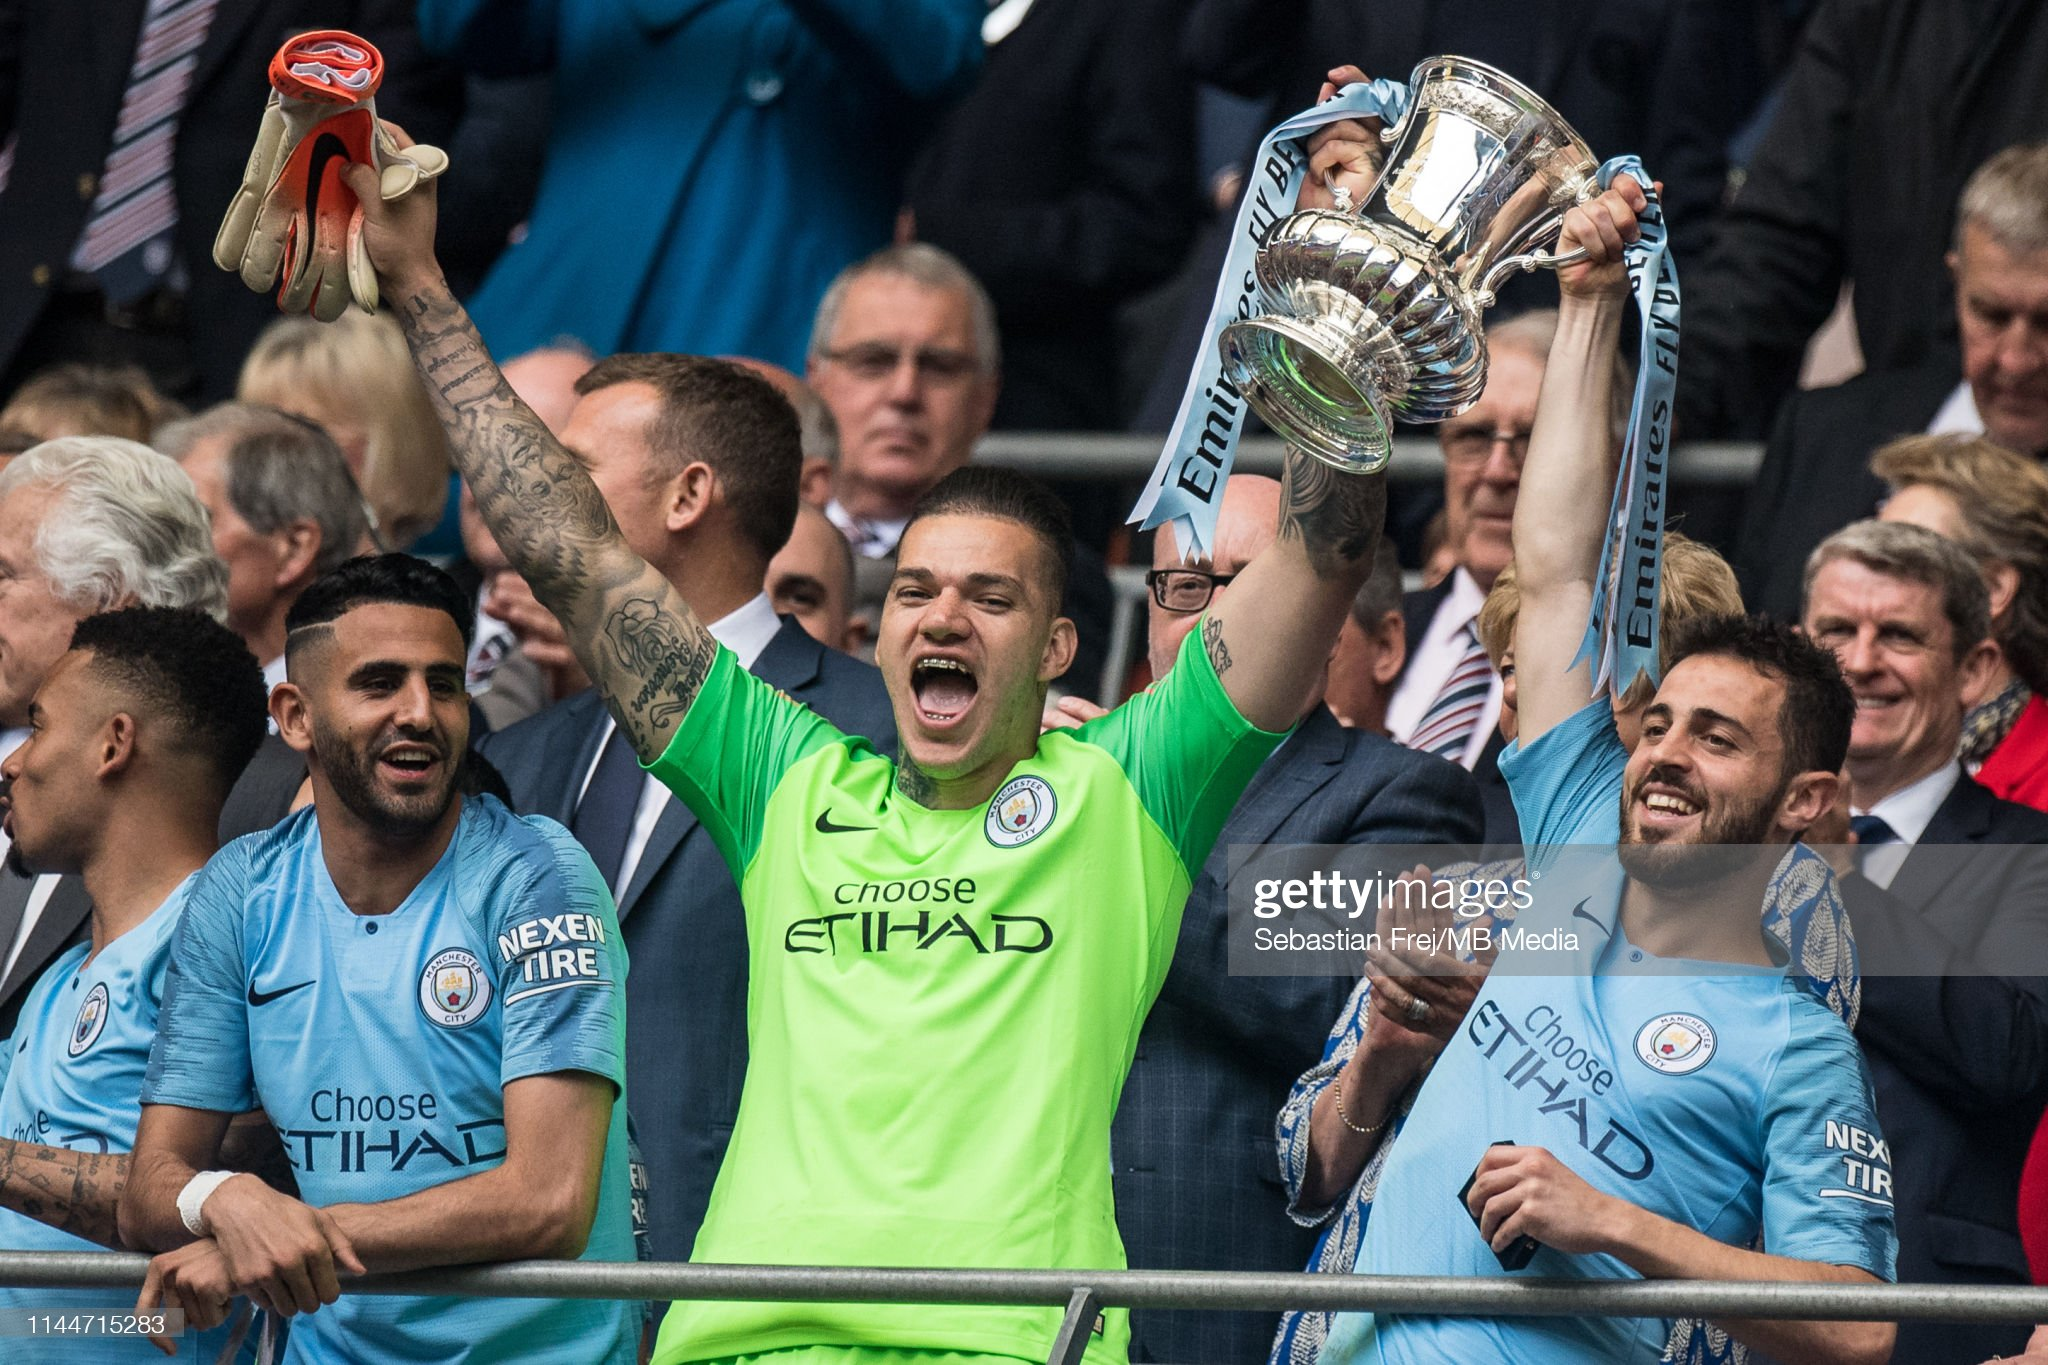 https://media.gettyimages.com/photos/ederson-and-bernardo-silva-of-manchester-city-with-fa-trophy-during-picture-id1144715283?s=2048x2048